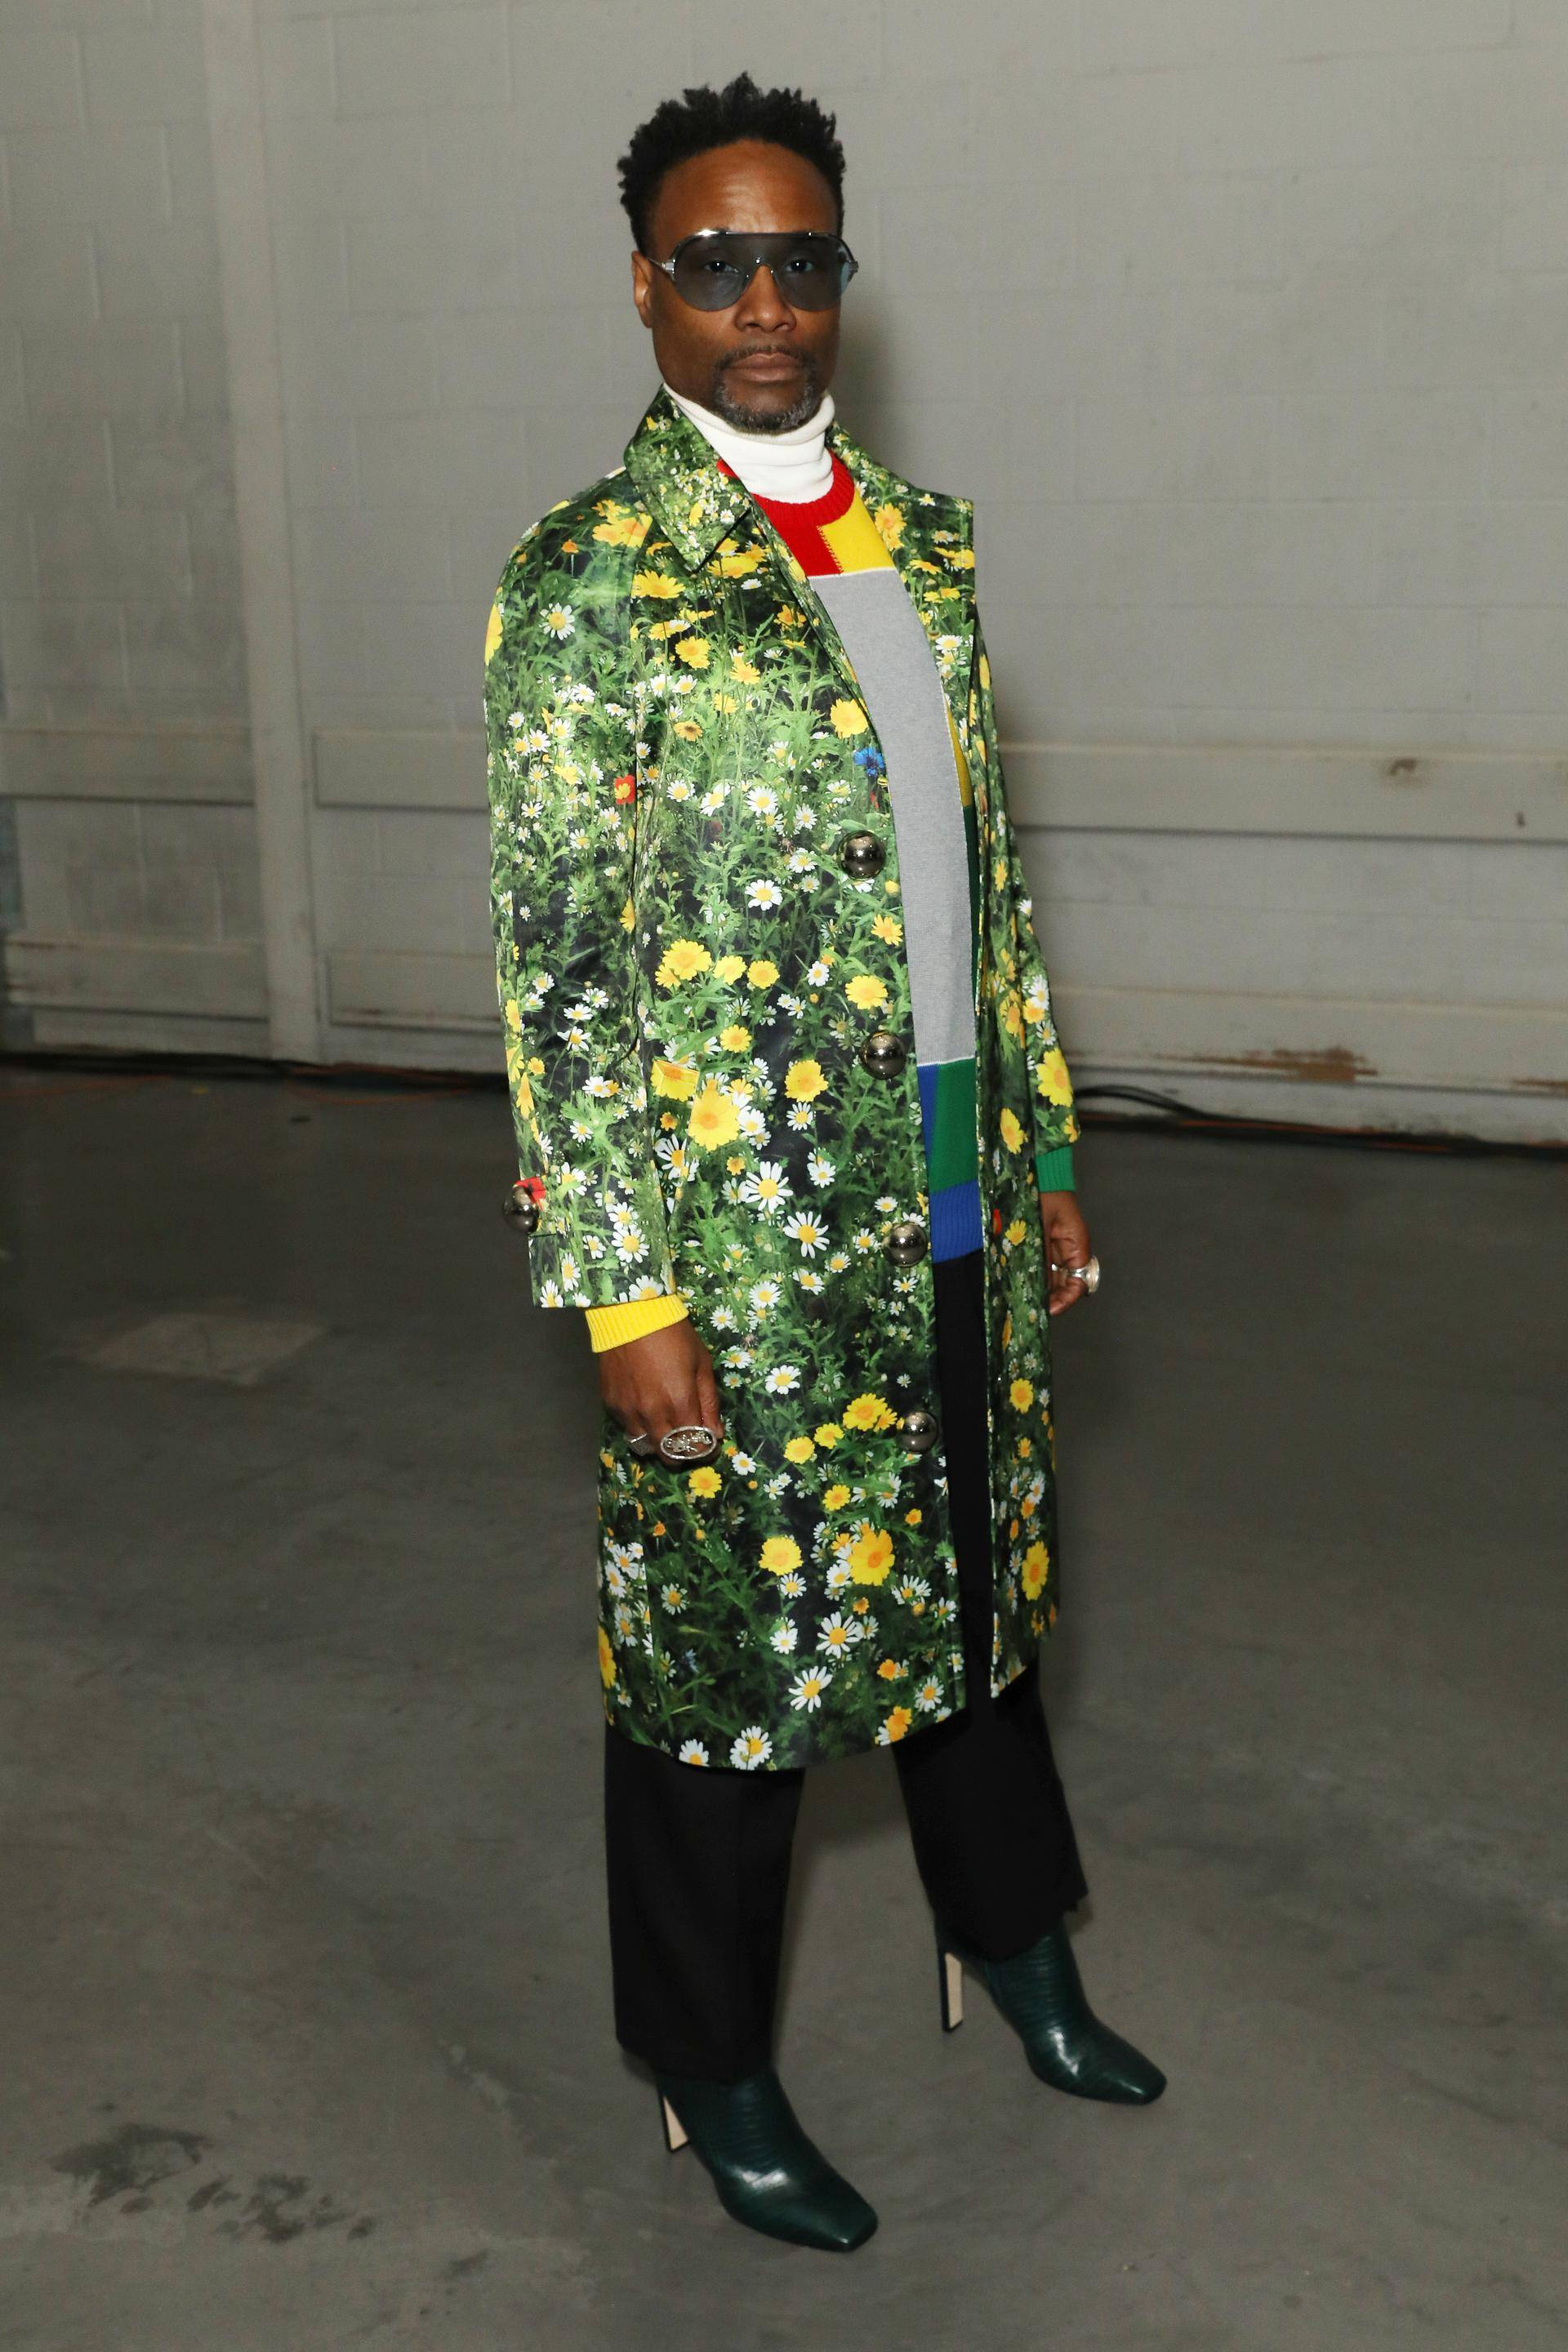 Flower Power - Billy Porter wore theLondon Fields Satin Coatfromthe Christopher Kane Spring/Summer 2020 collection at their runway show in London.(Photo: Darren Gerrish) (Photo: Darren Gerrish)